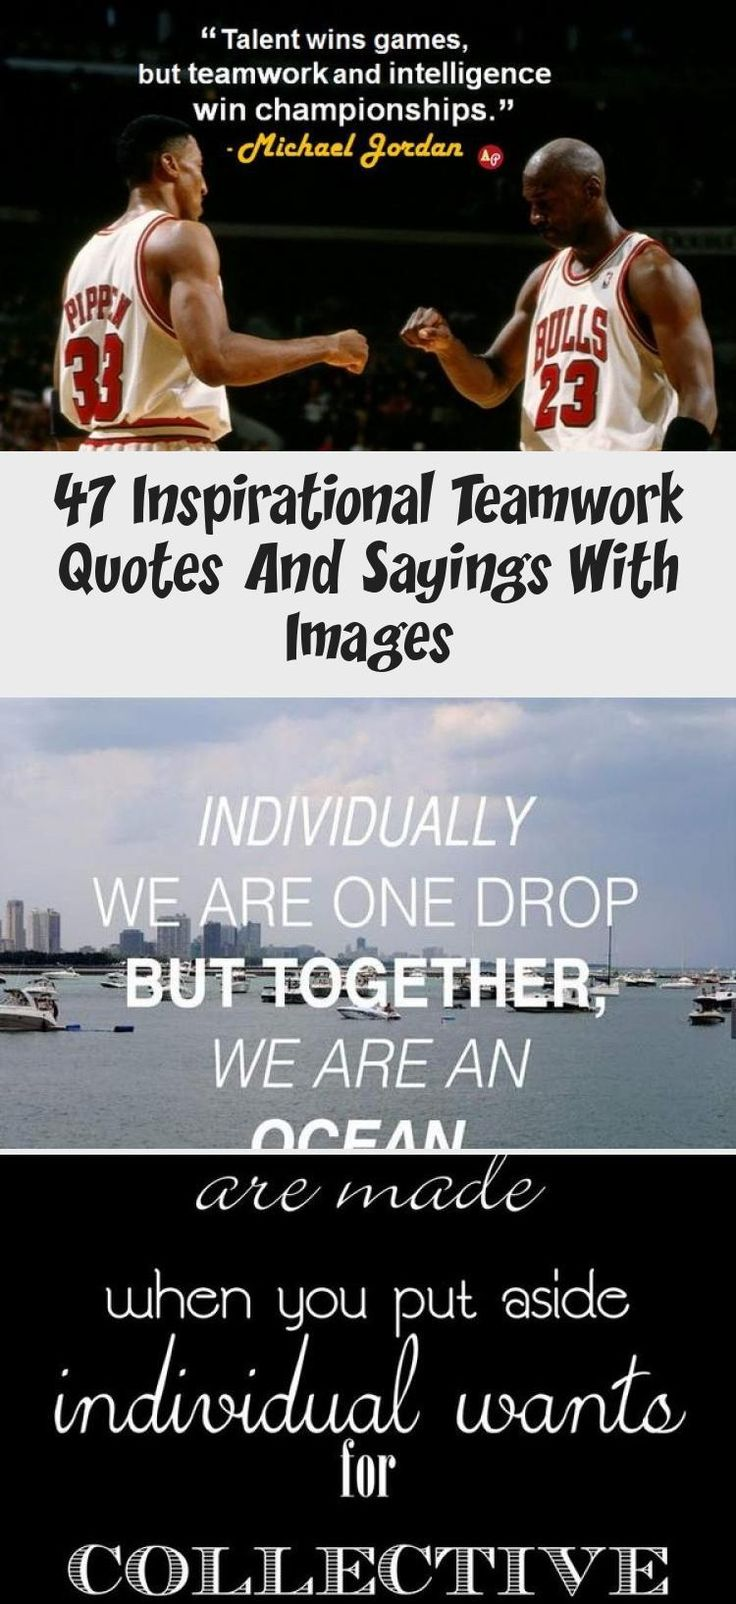 The most inspirational, famous and funny teamwork quotes